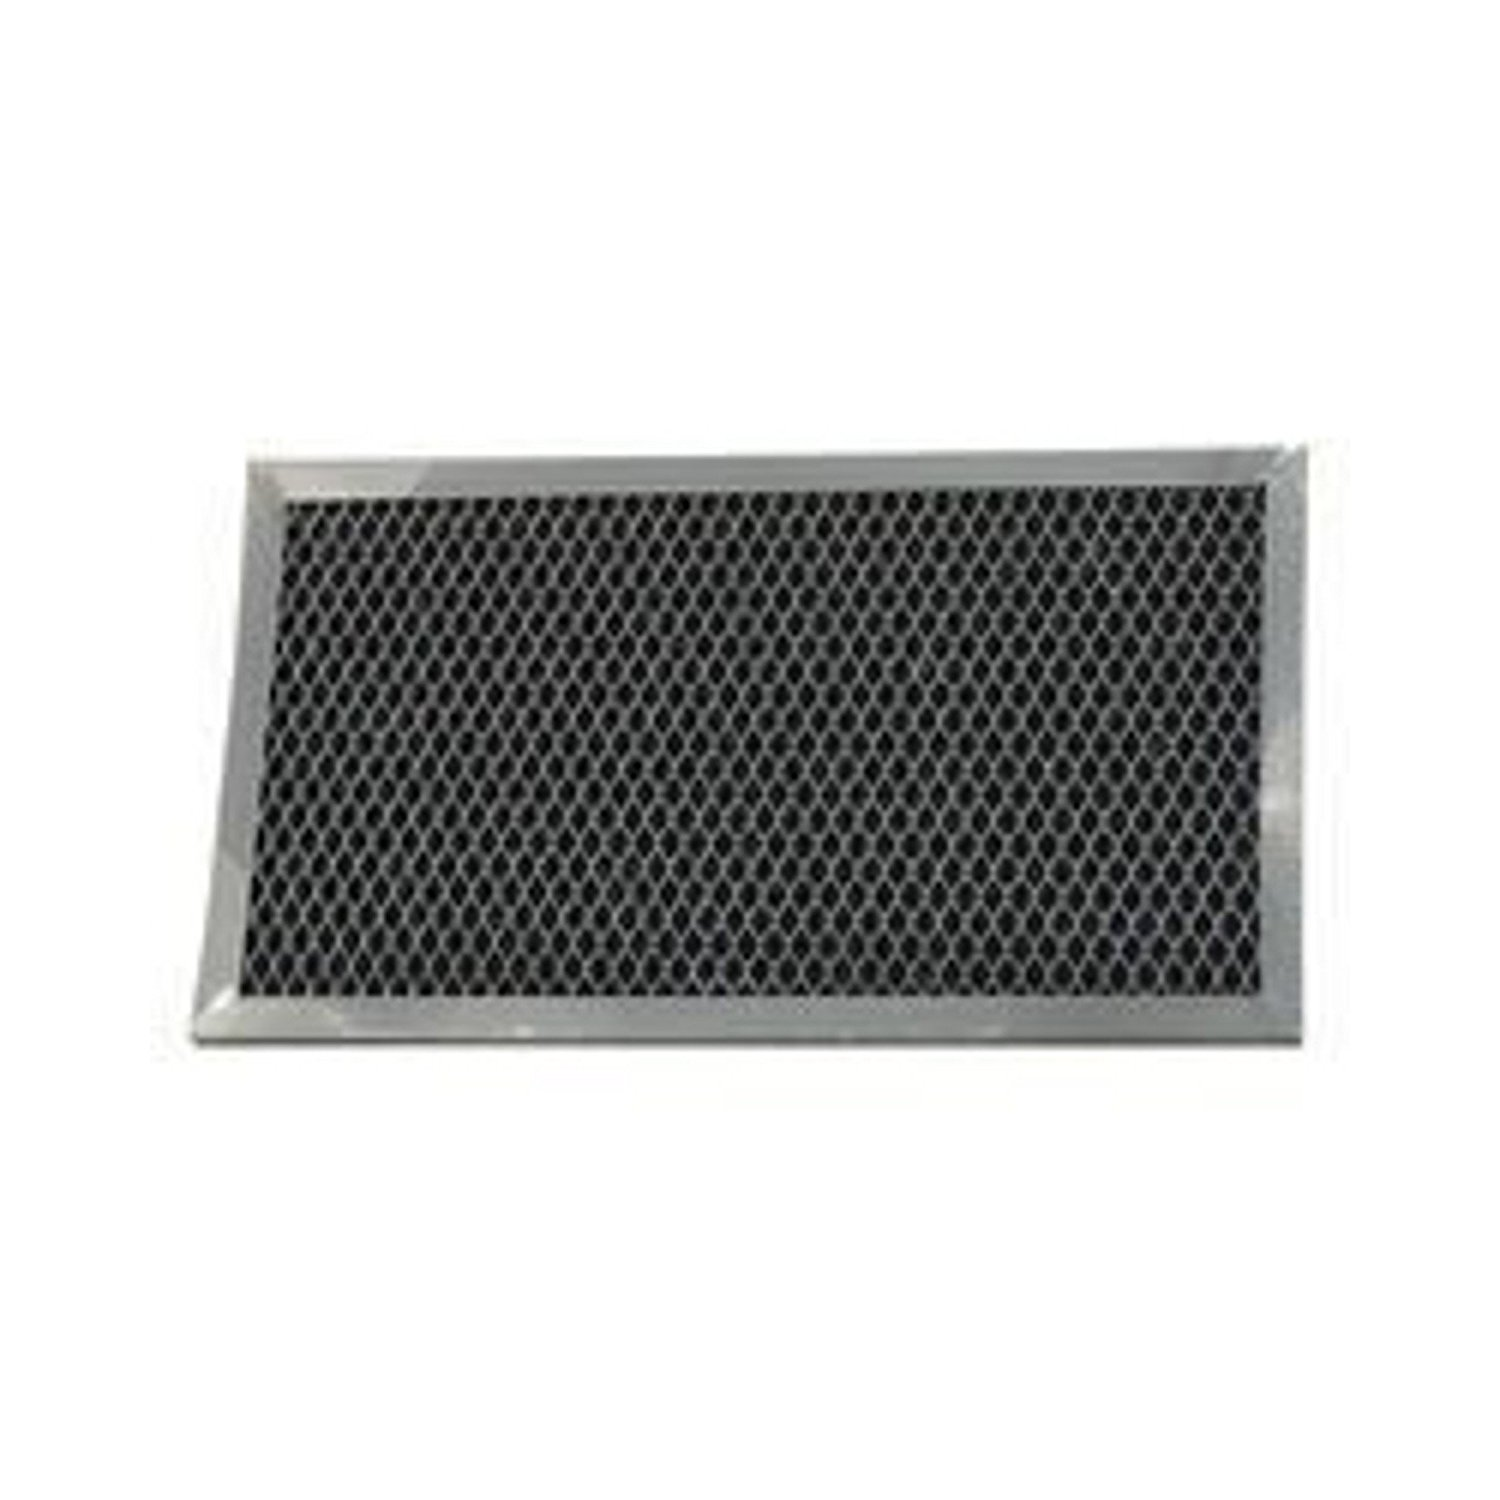 ERWB2X9883 ERP Filter Charcoal Replaces WB2X9883